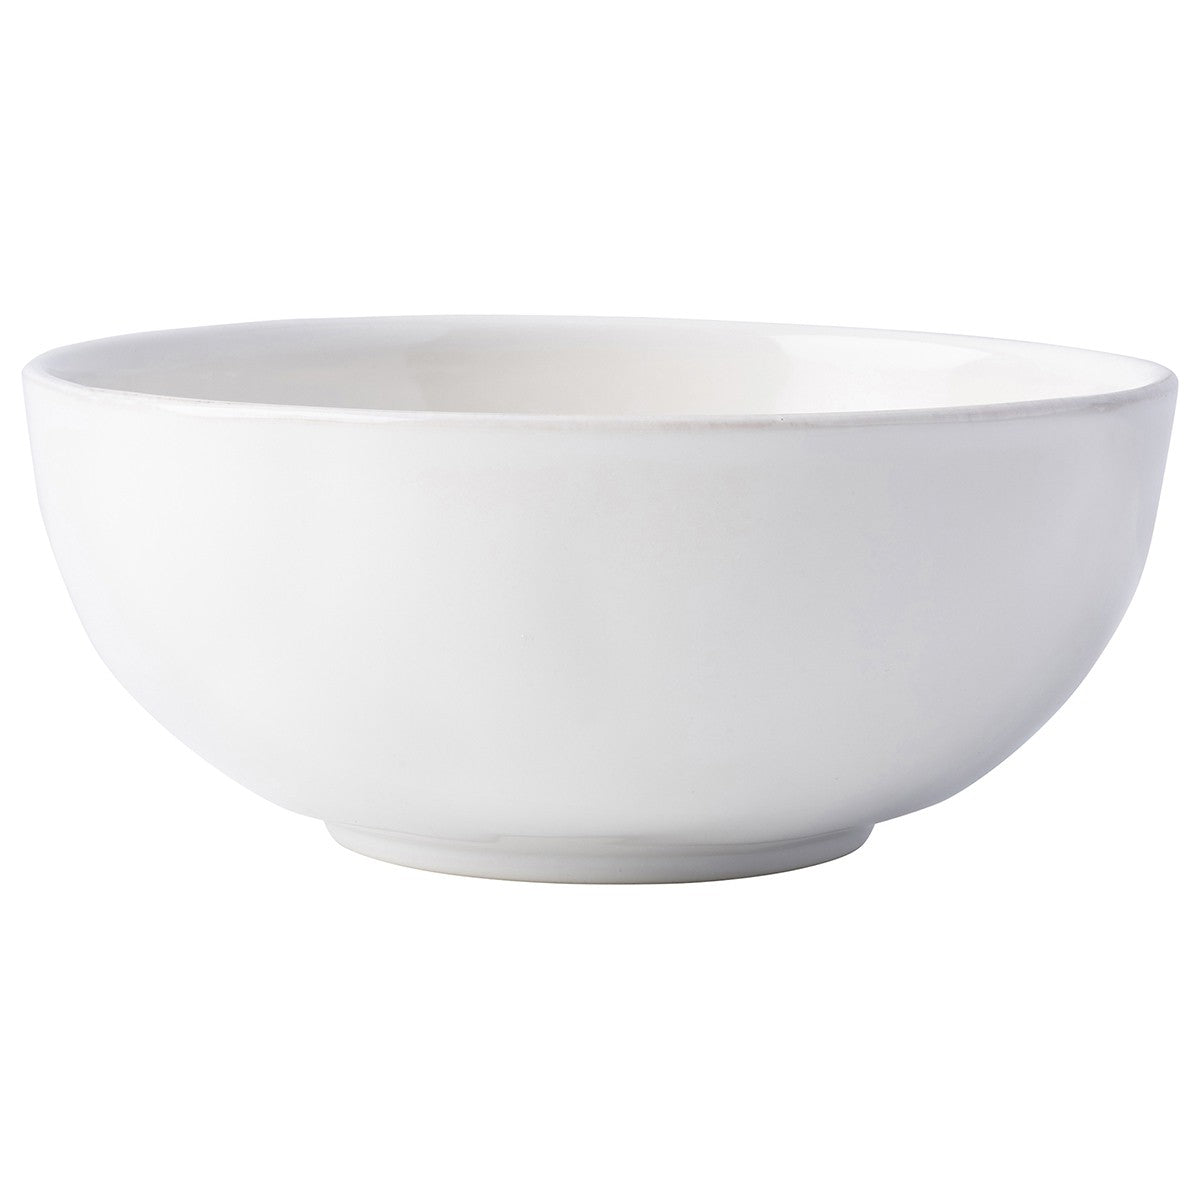 Juliska - Puro Whitewash  Cereal/Ice Cream Bowl